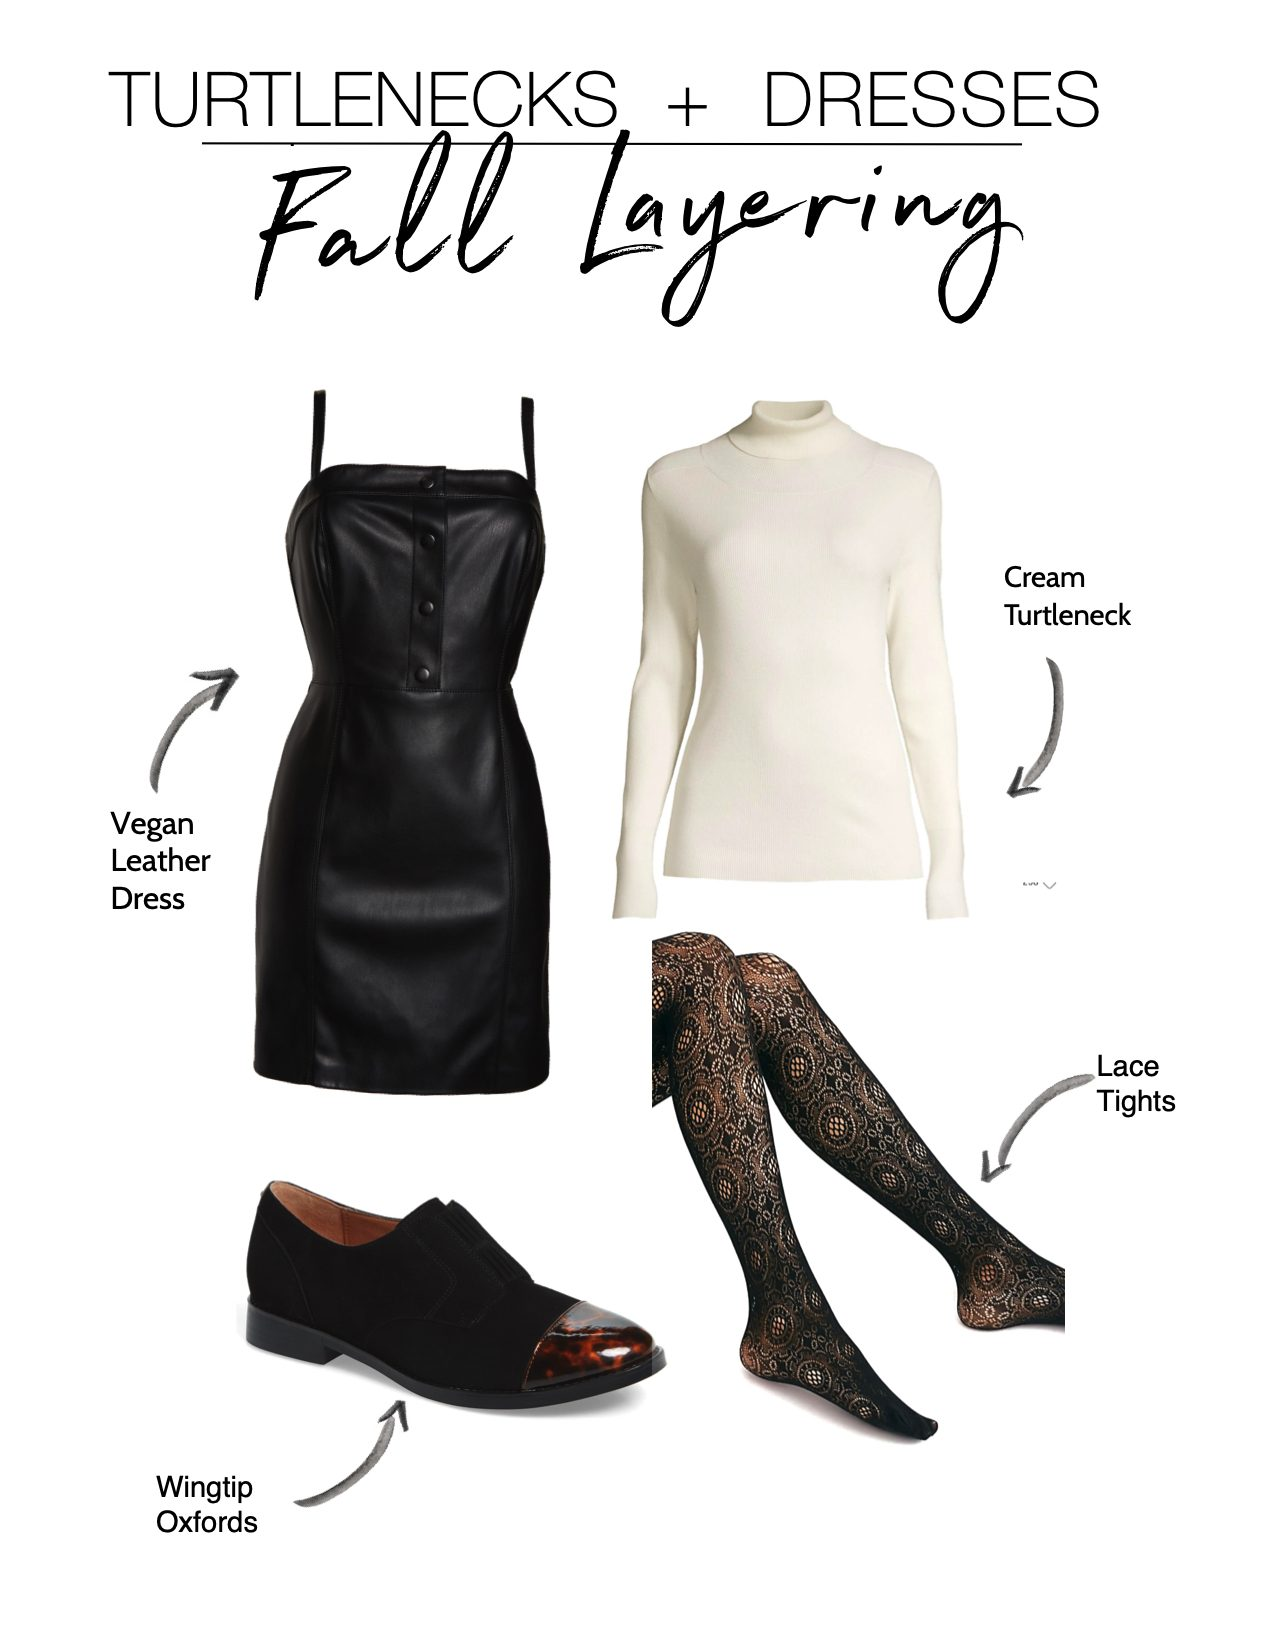 Dresses + turtlenecks has become my fav fall styling hack. All you need is a lil' layering skill & this fall outfit idea makes almost any dress wearable year-round.